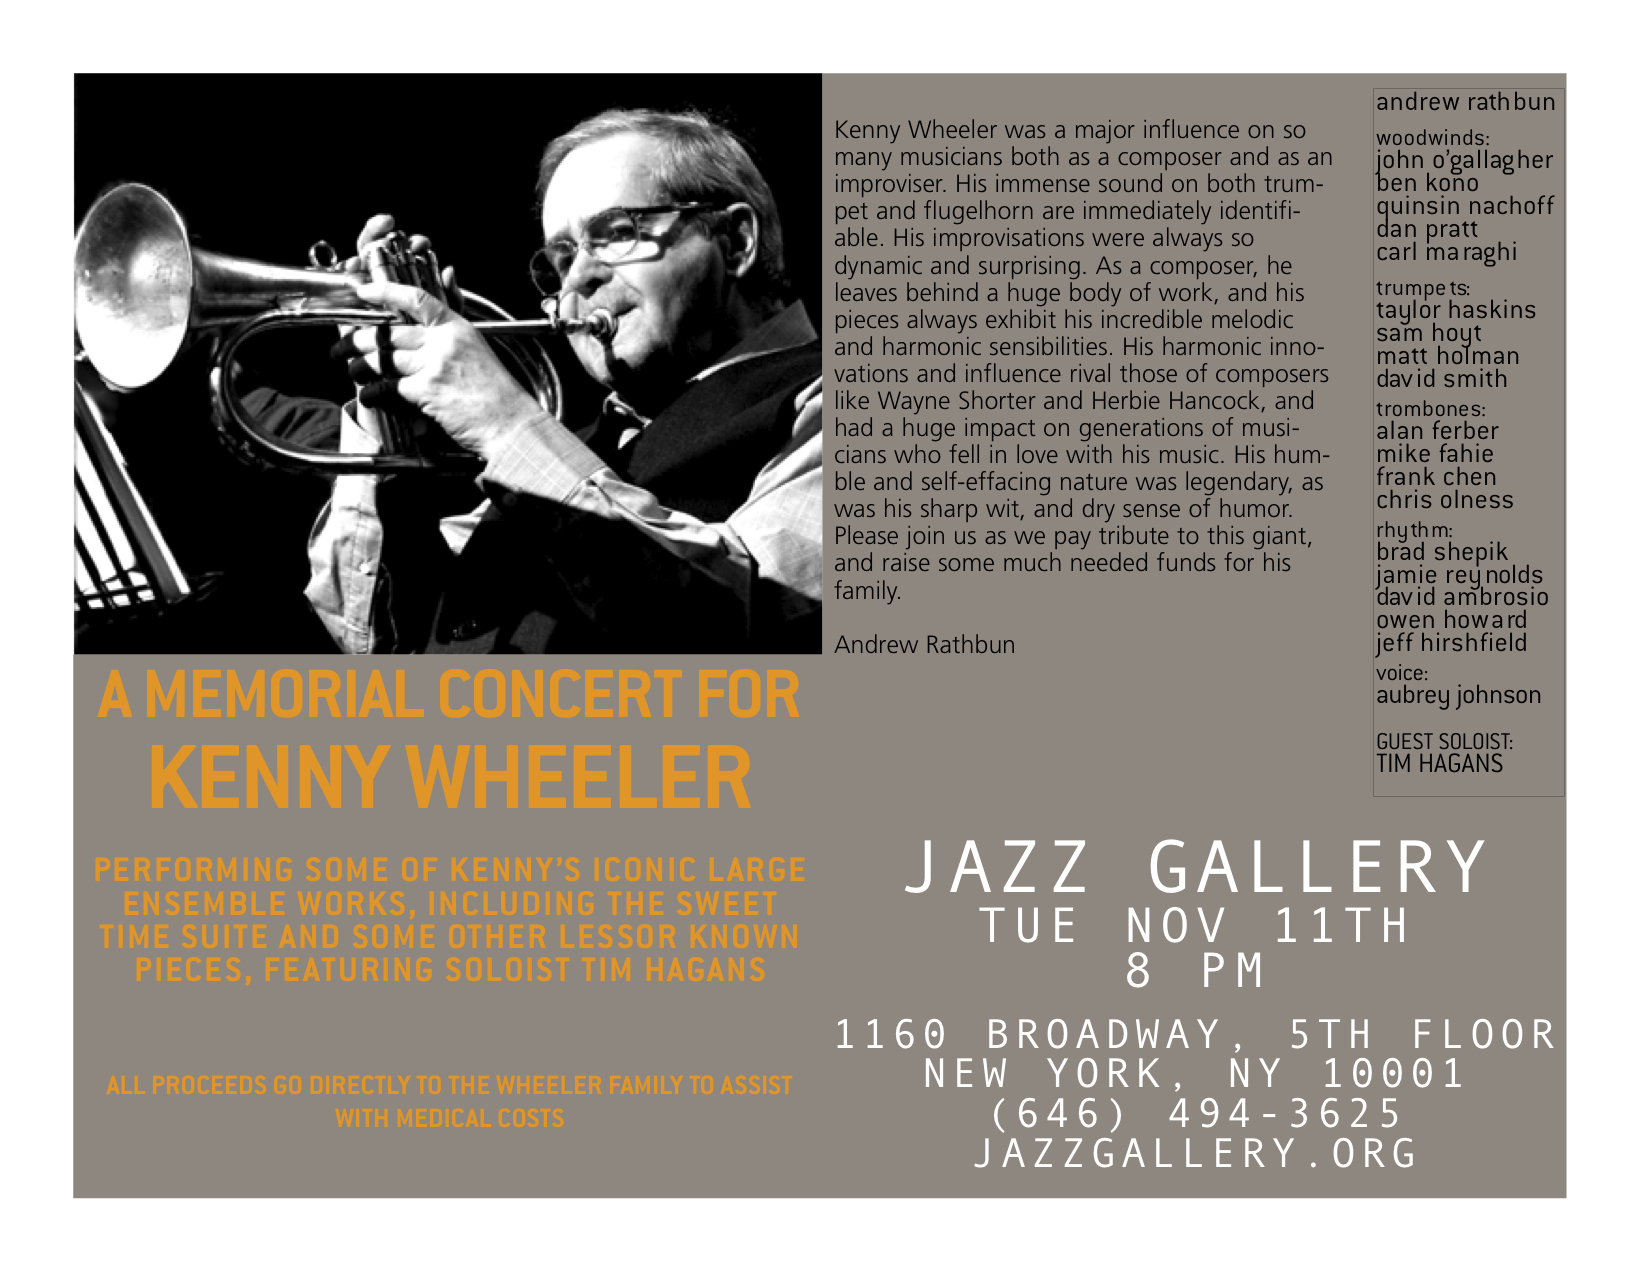 Andrew on Kenny Wheeler